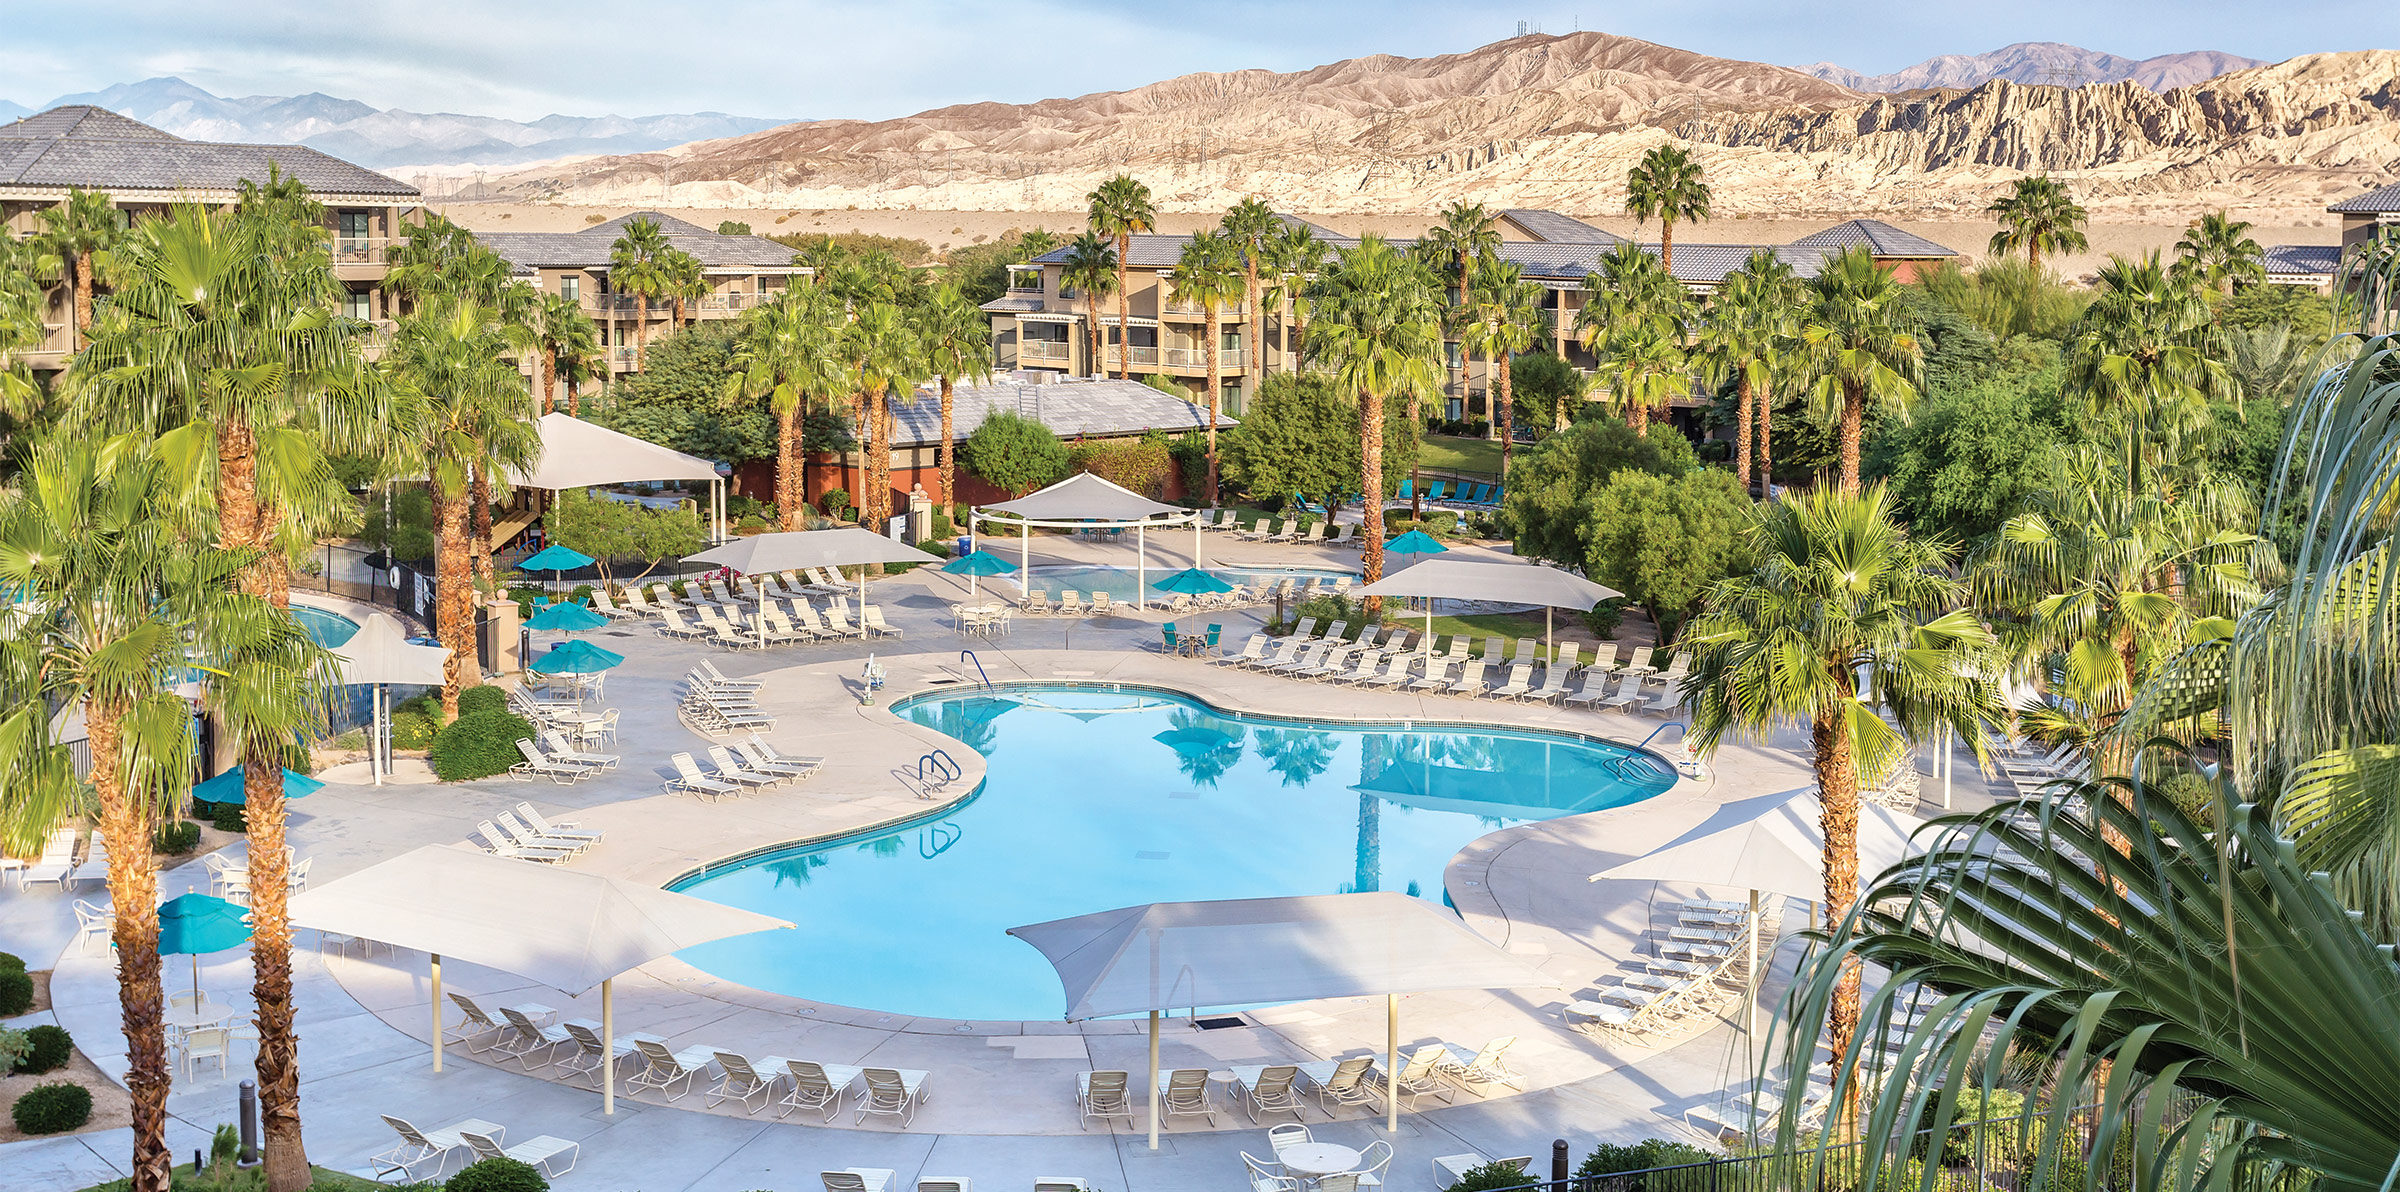 Apartment 2 Bedroom 2 Bath In Indio  CA   Palm Springs  5 miles from COACHELLA photo 20365365